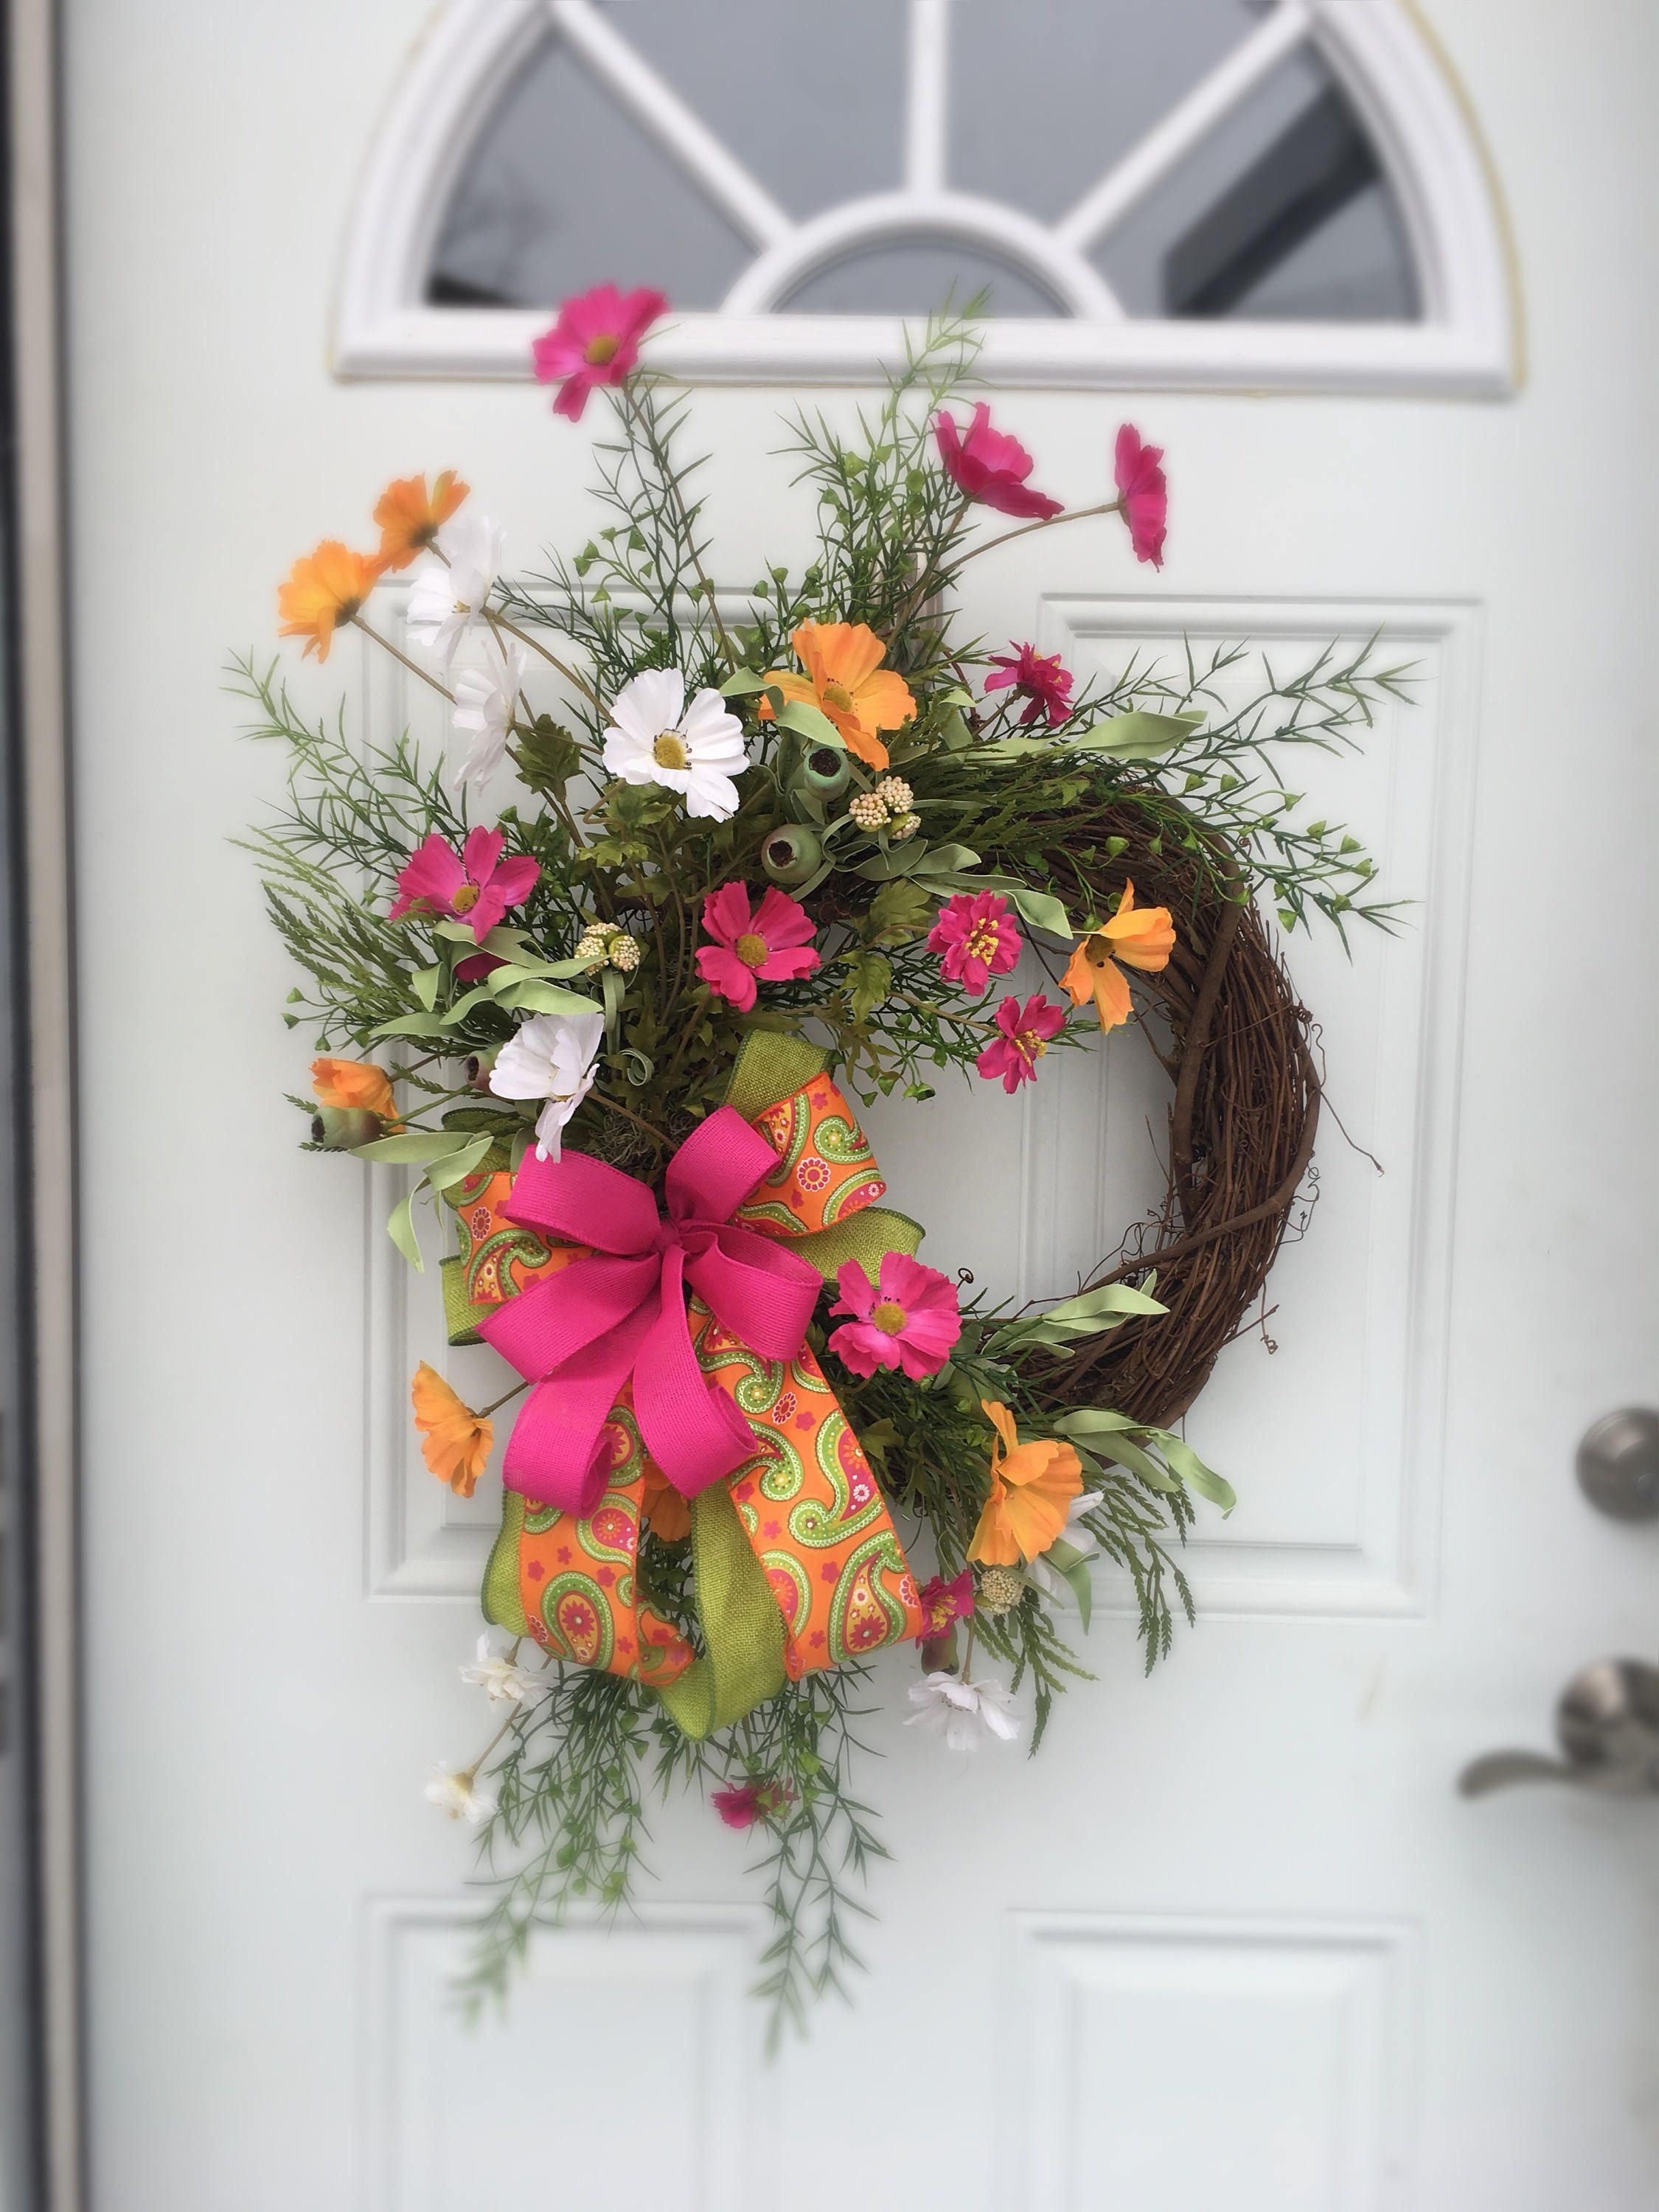 doors wreath gaslight easter spring front door design wreaths floral products